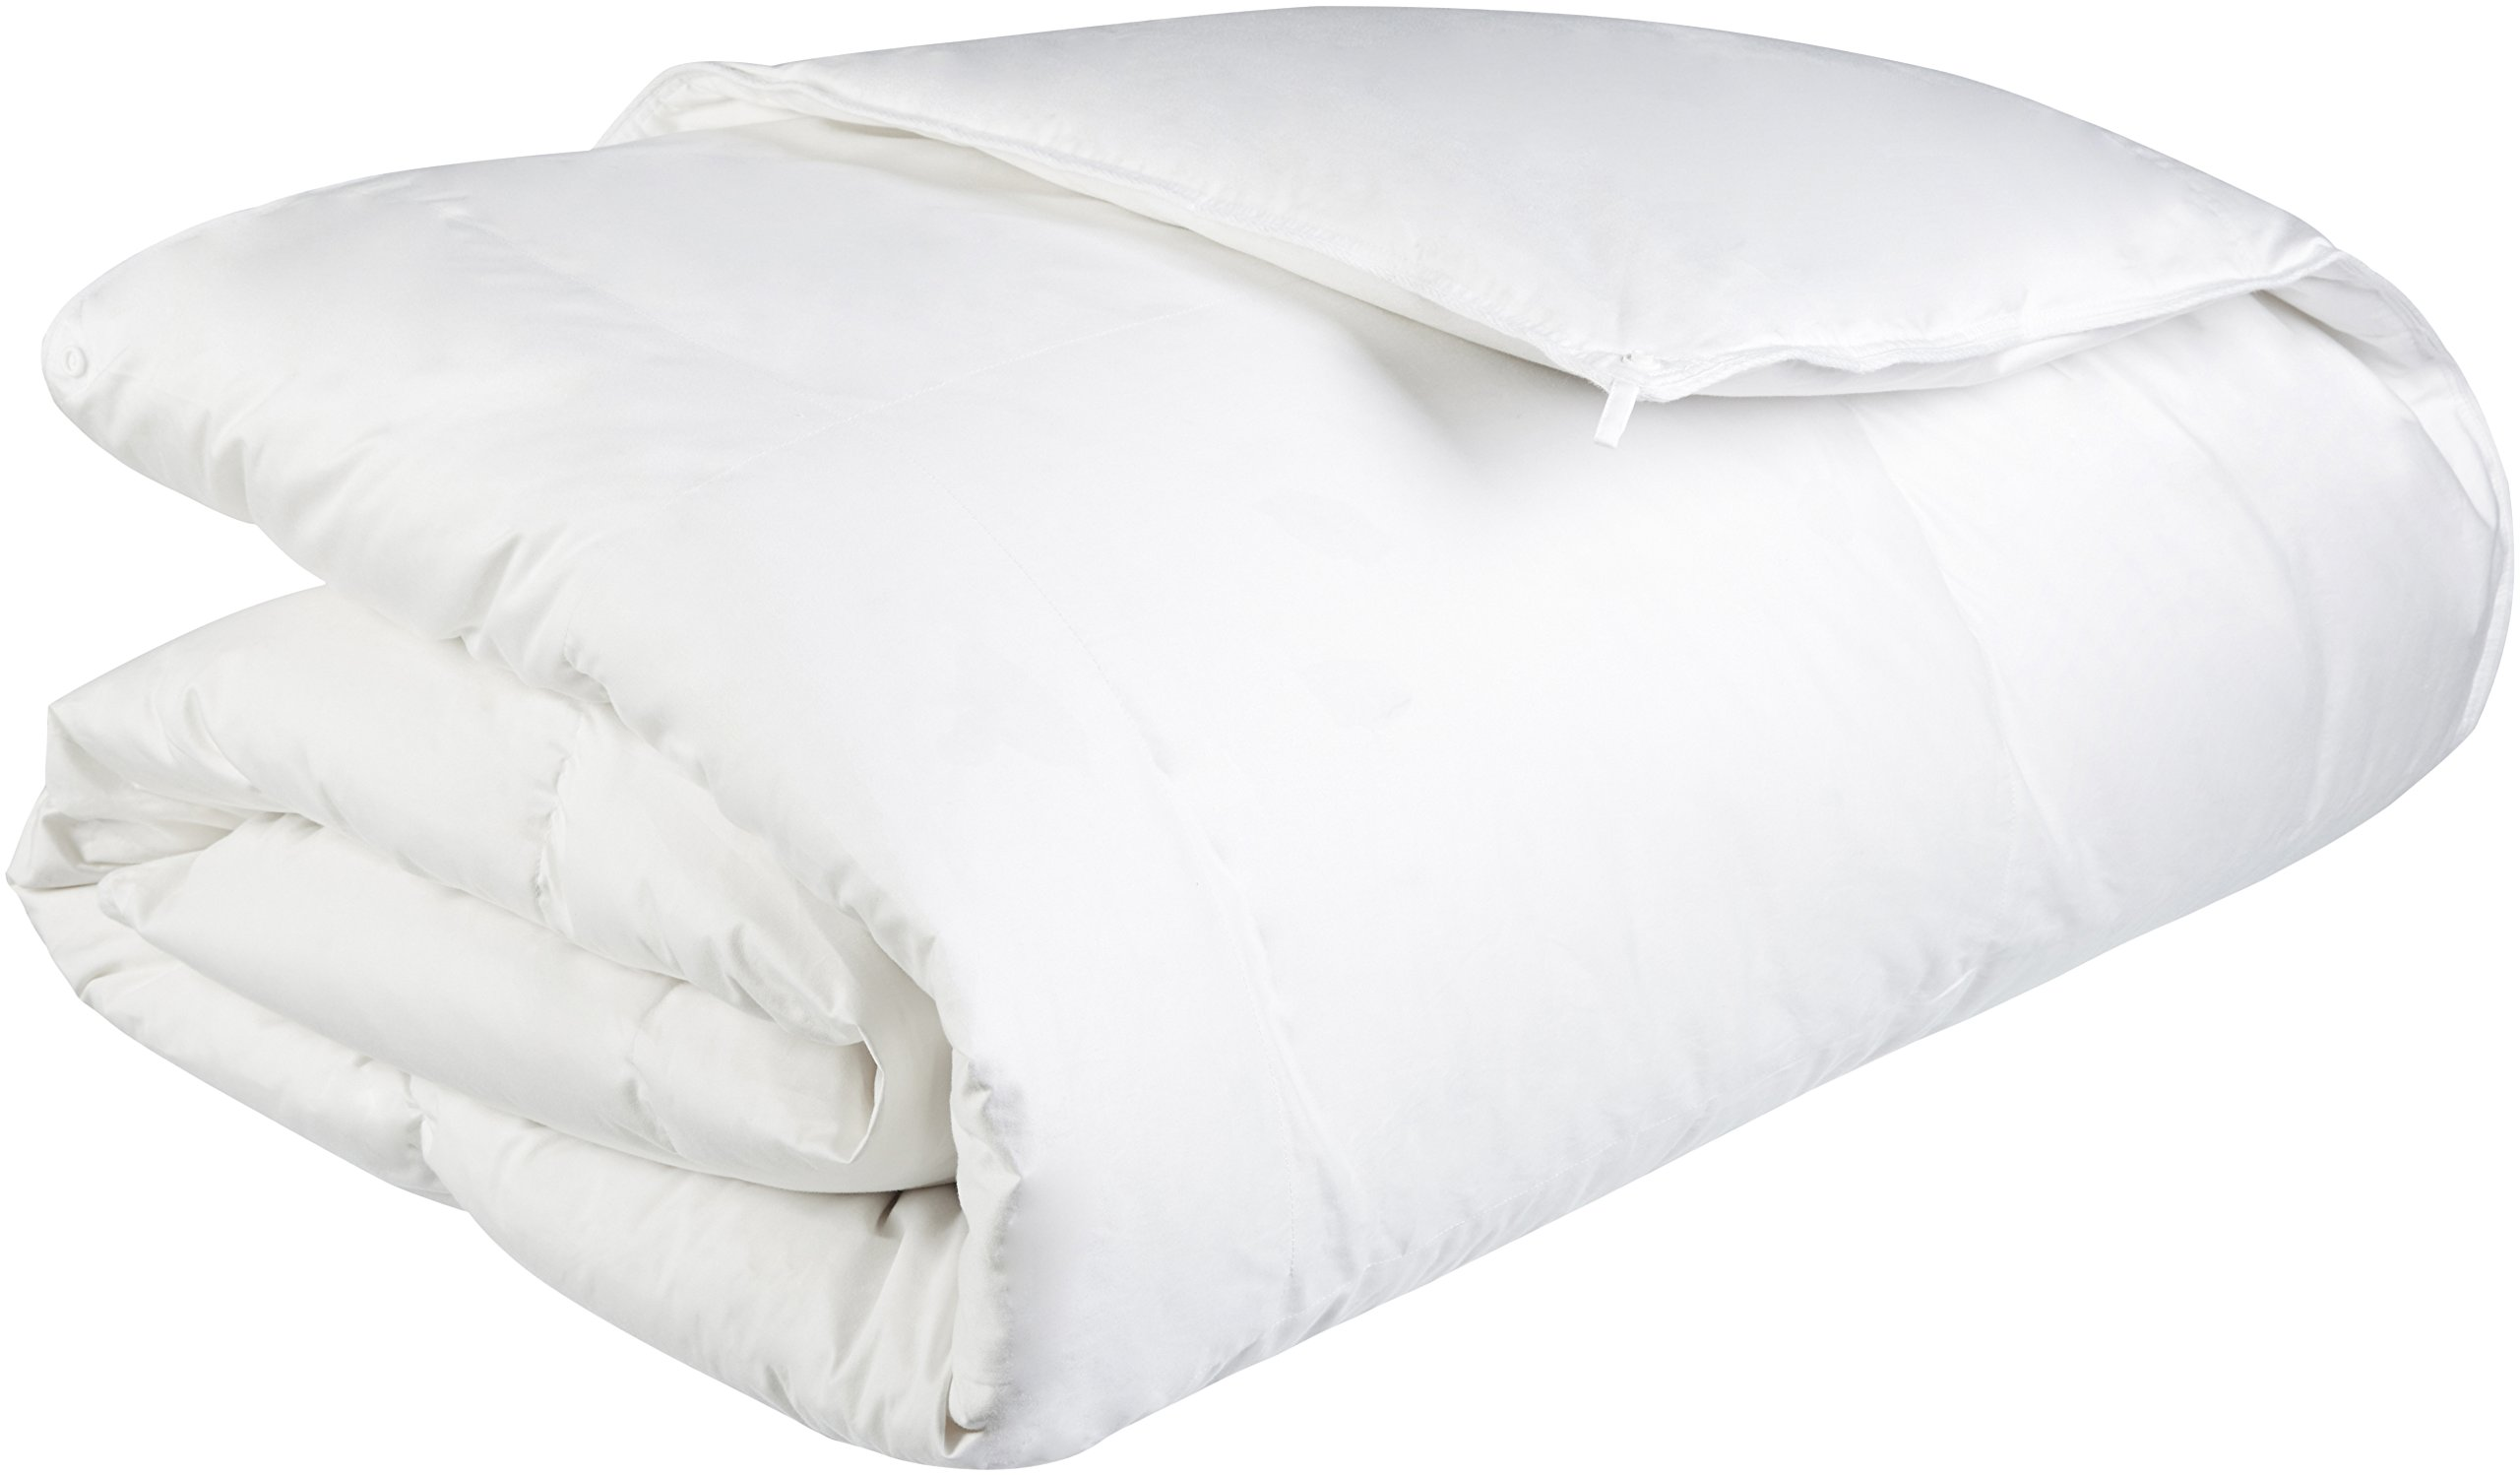 Pinzon Heavyweight Shed-Resistant White Down Comforter - King by Pinzon by Amazon